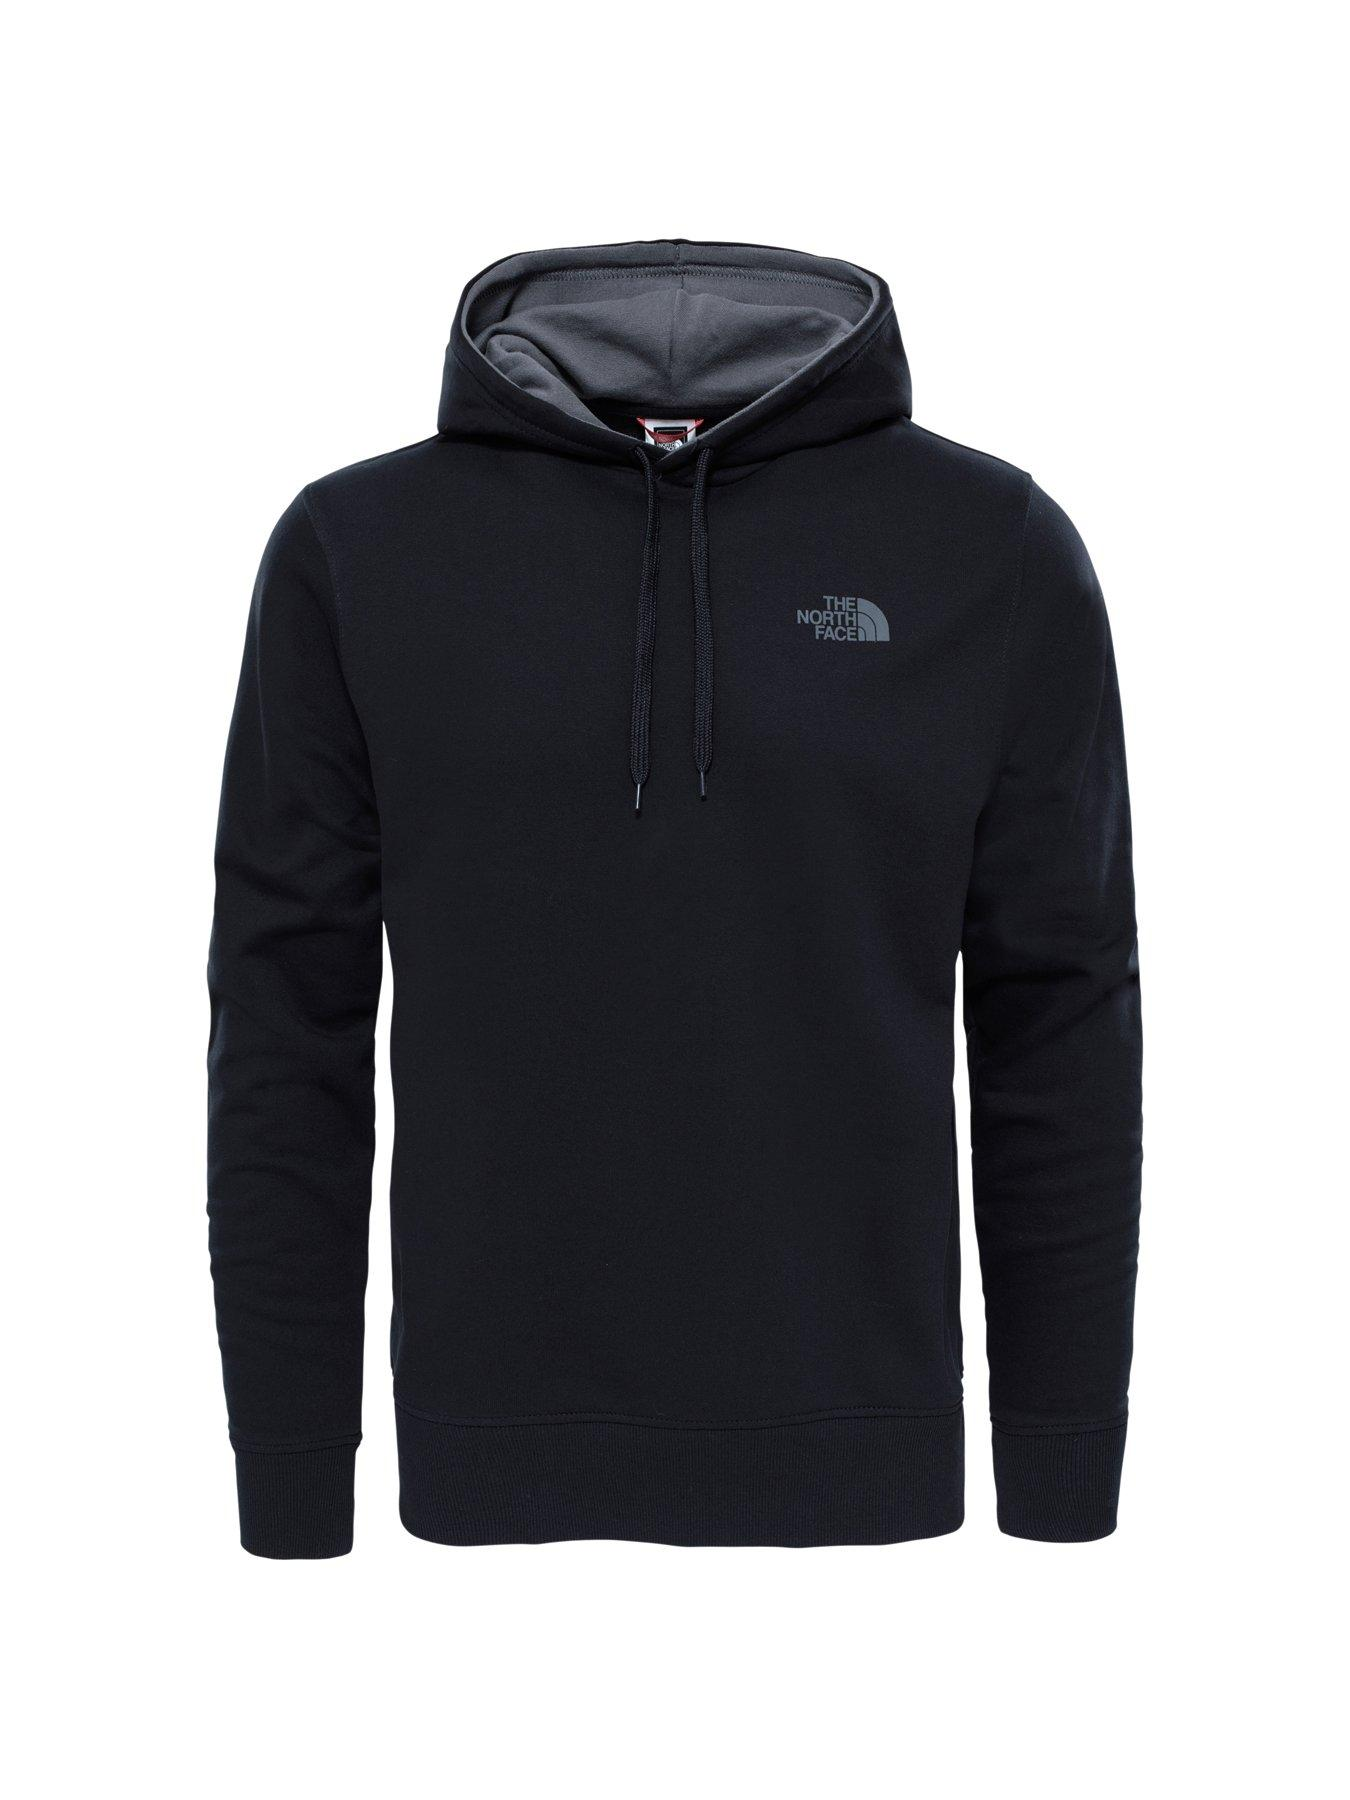 The North Face Mens Hoodie Pullover Performance Sweatshirt Long Sleeve Logo New